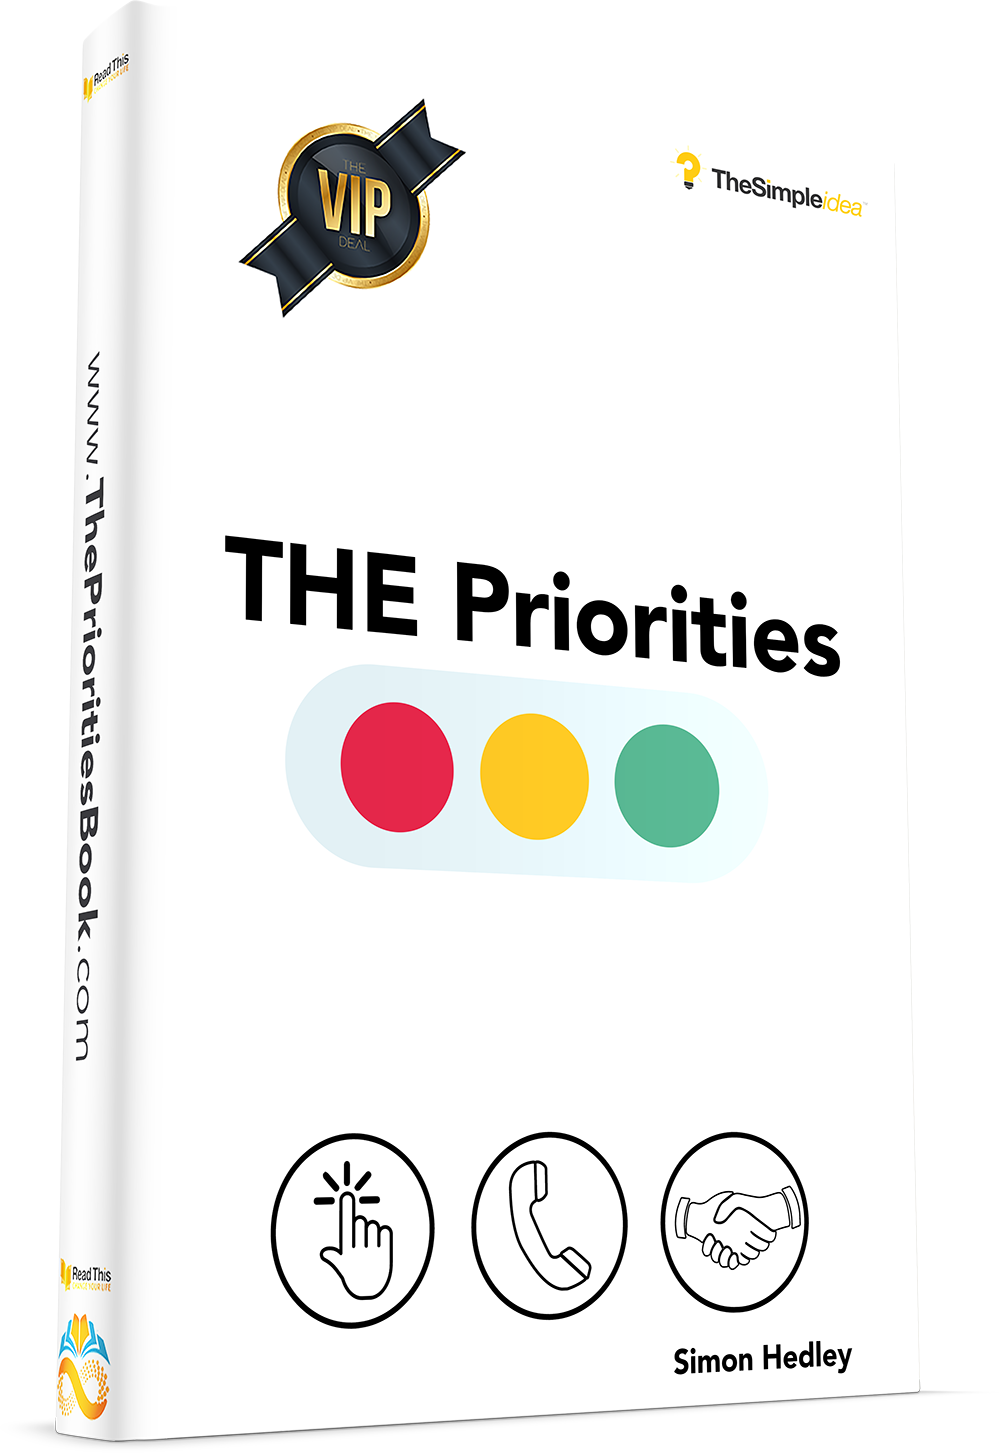 THE Priorities™ Book